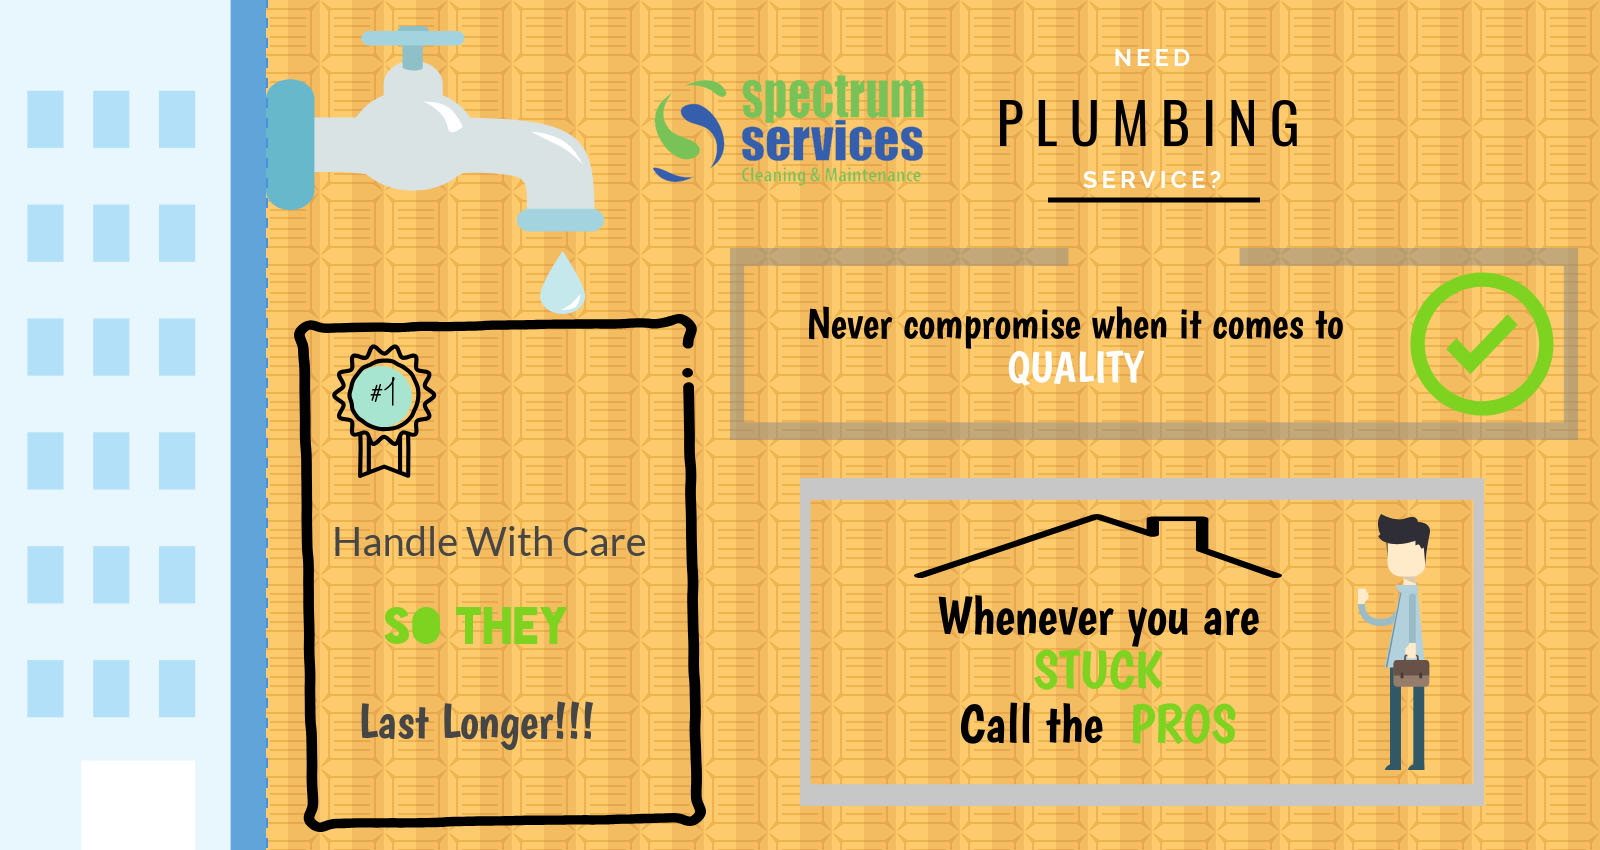 Looking for plumbing service in Dubai? Things to look out for